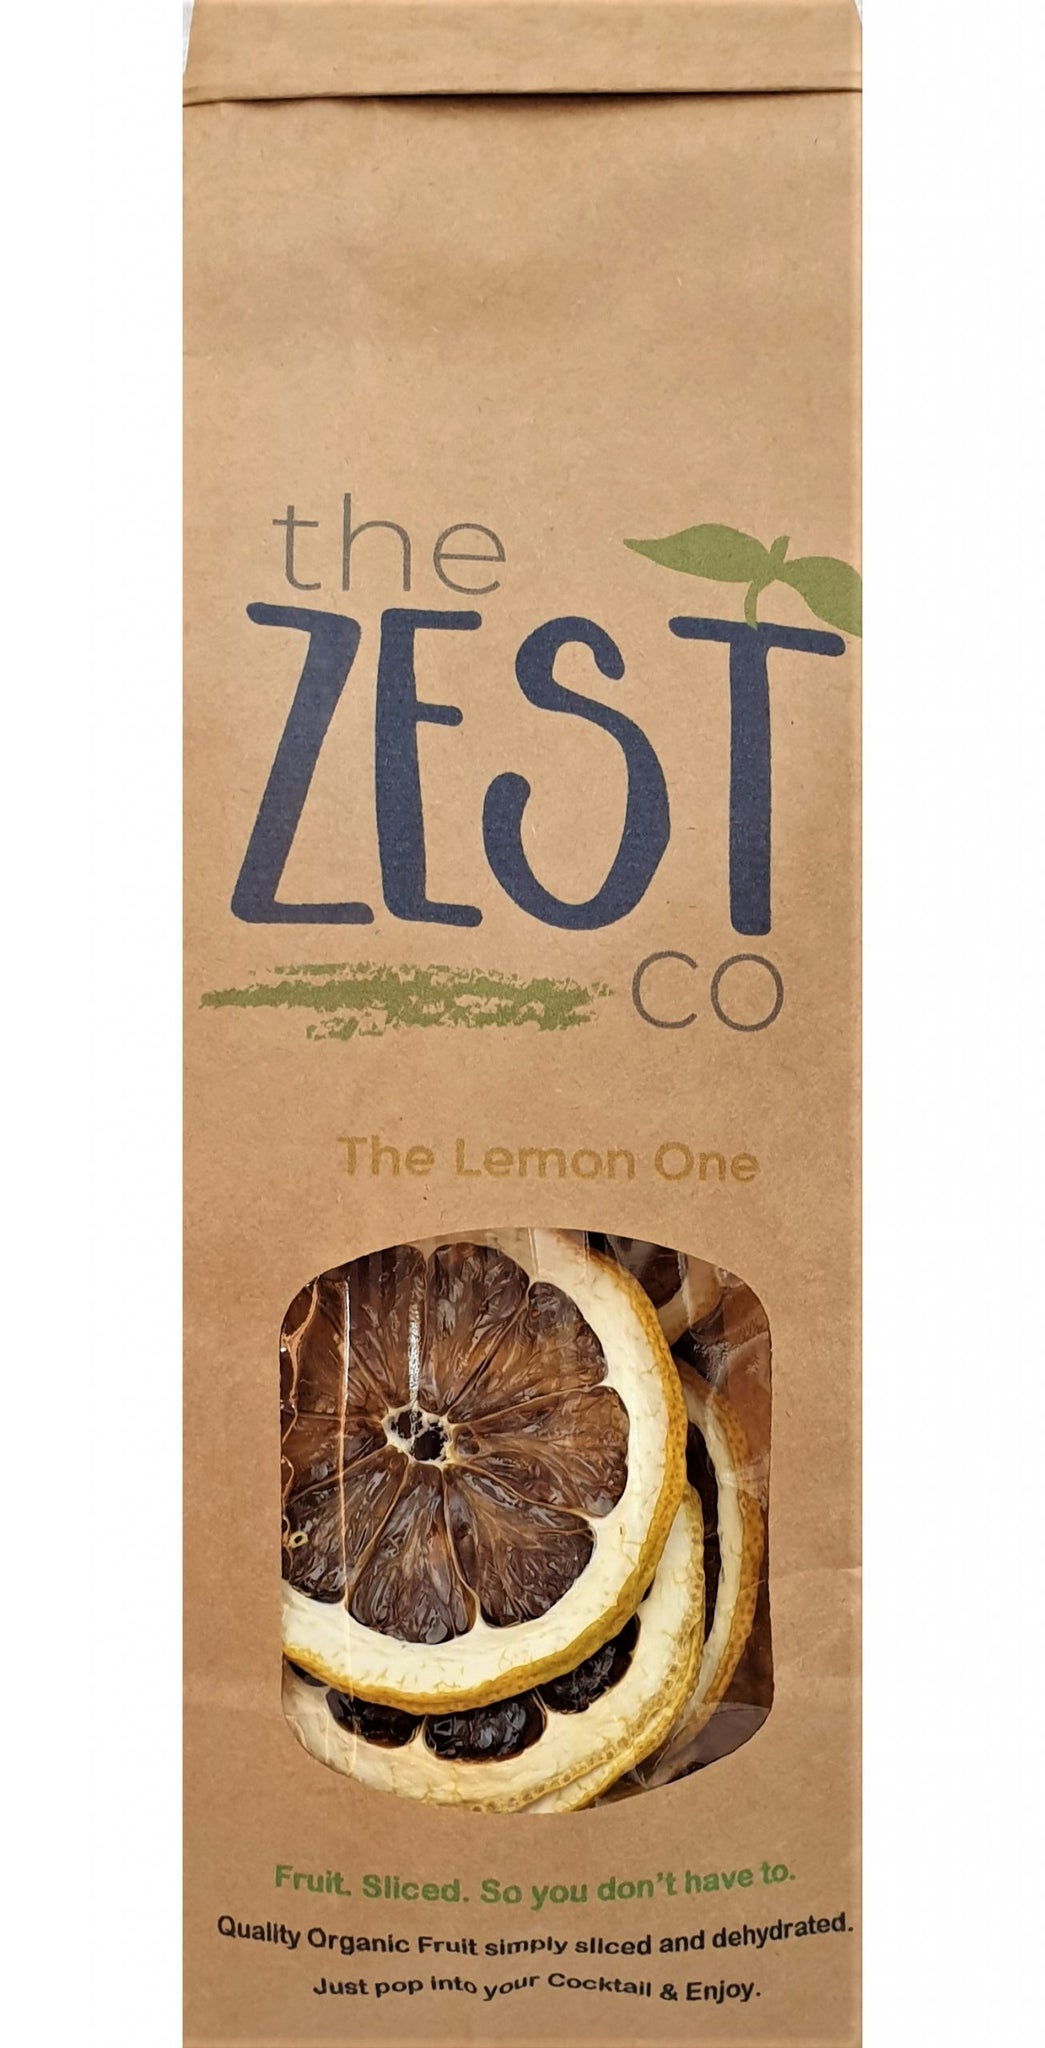 The Zest Co. The Lemon One